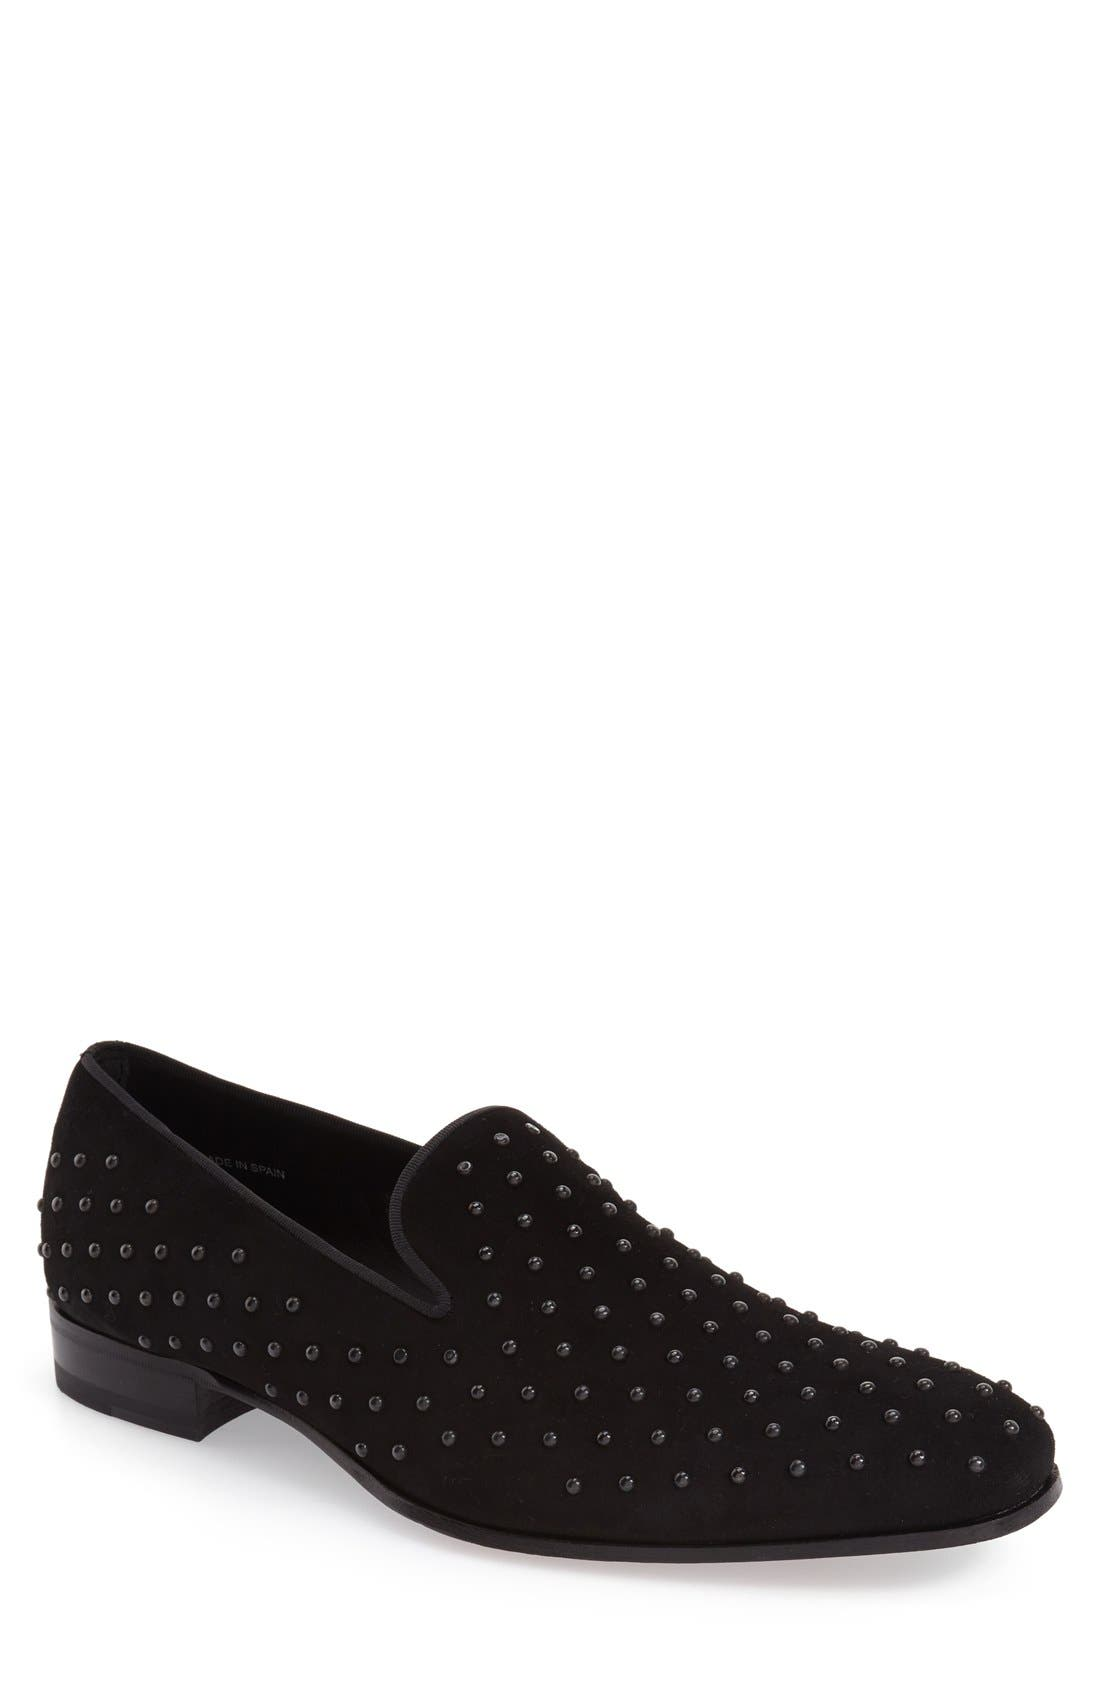 Alternate Image 1 Selected - Mezlan 'Batiste' Studded Venetian Loafer (Men)